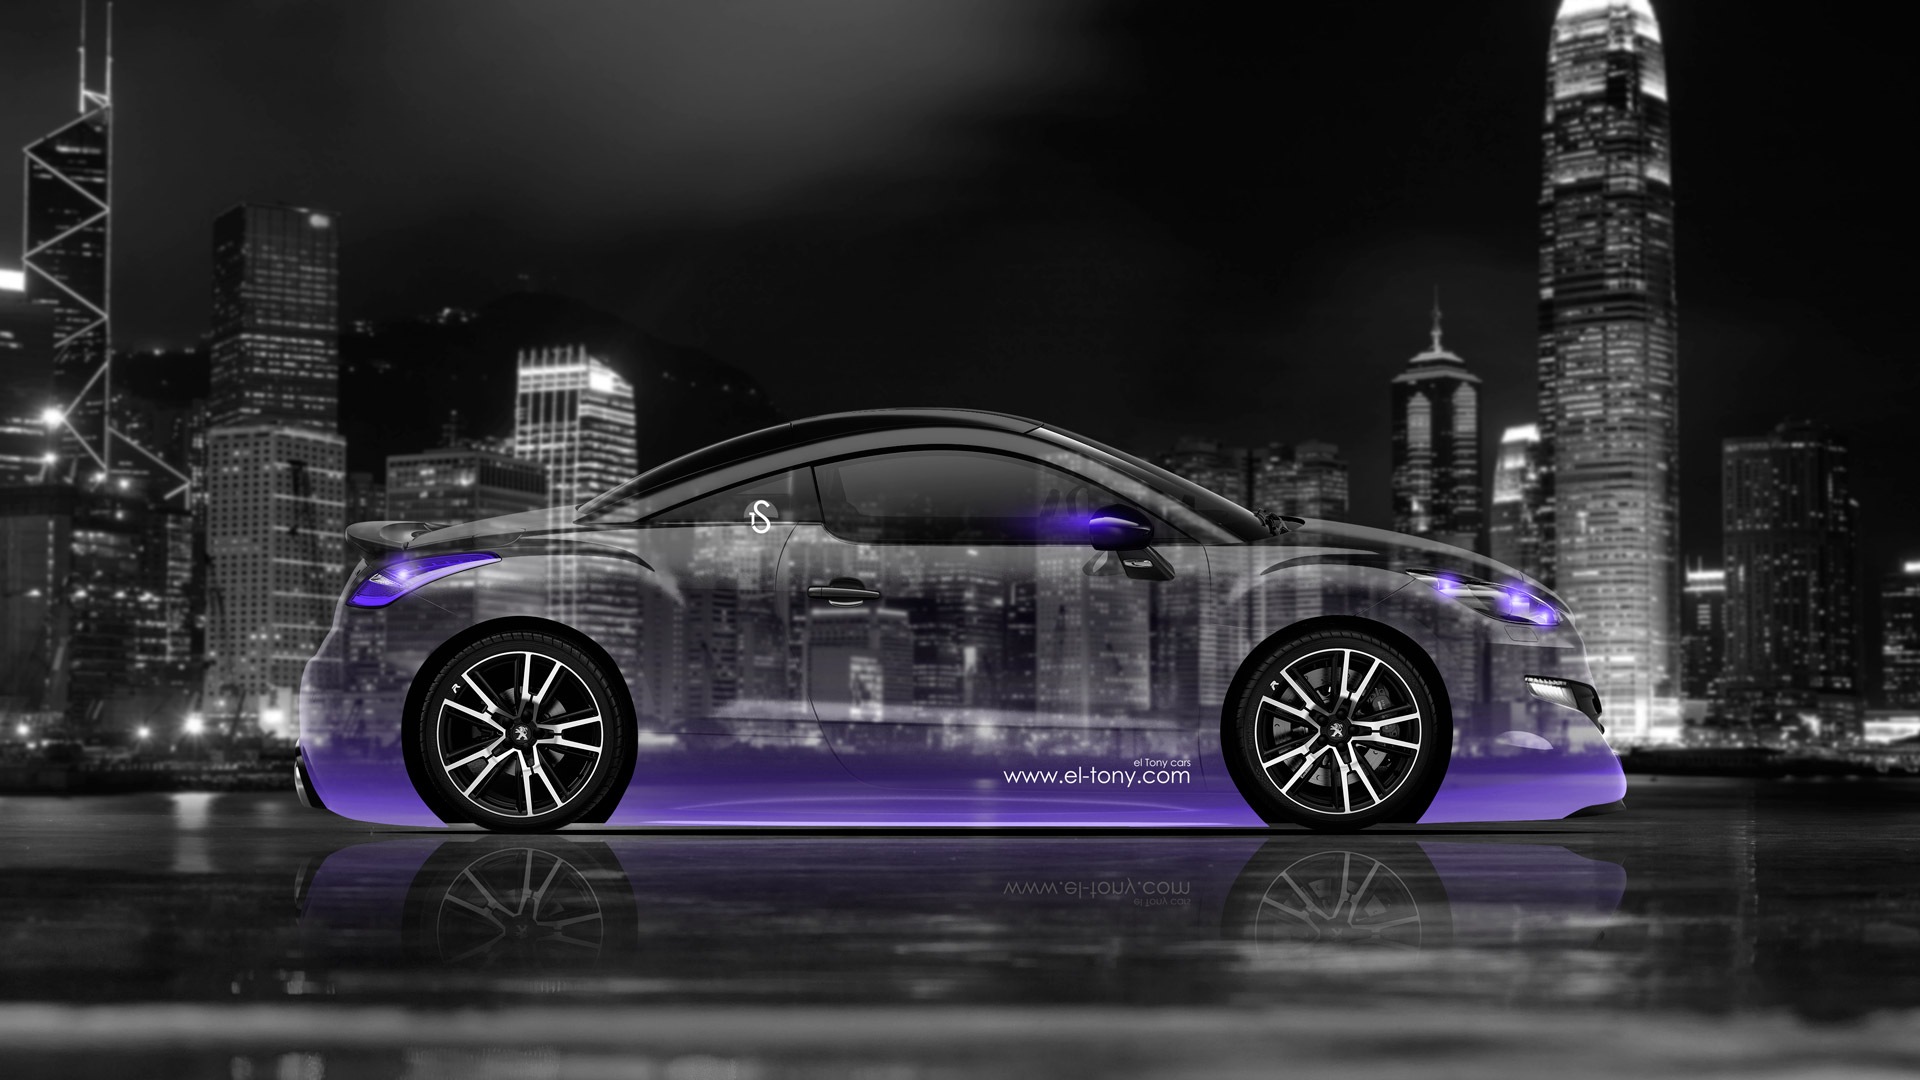 Peugeot RCZ Side Crystal City Car 2014 Violet